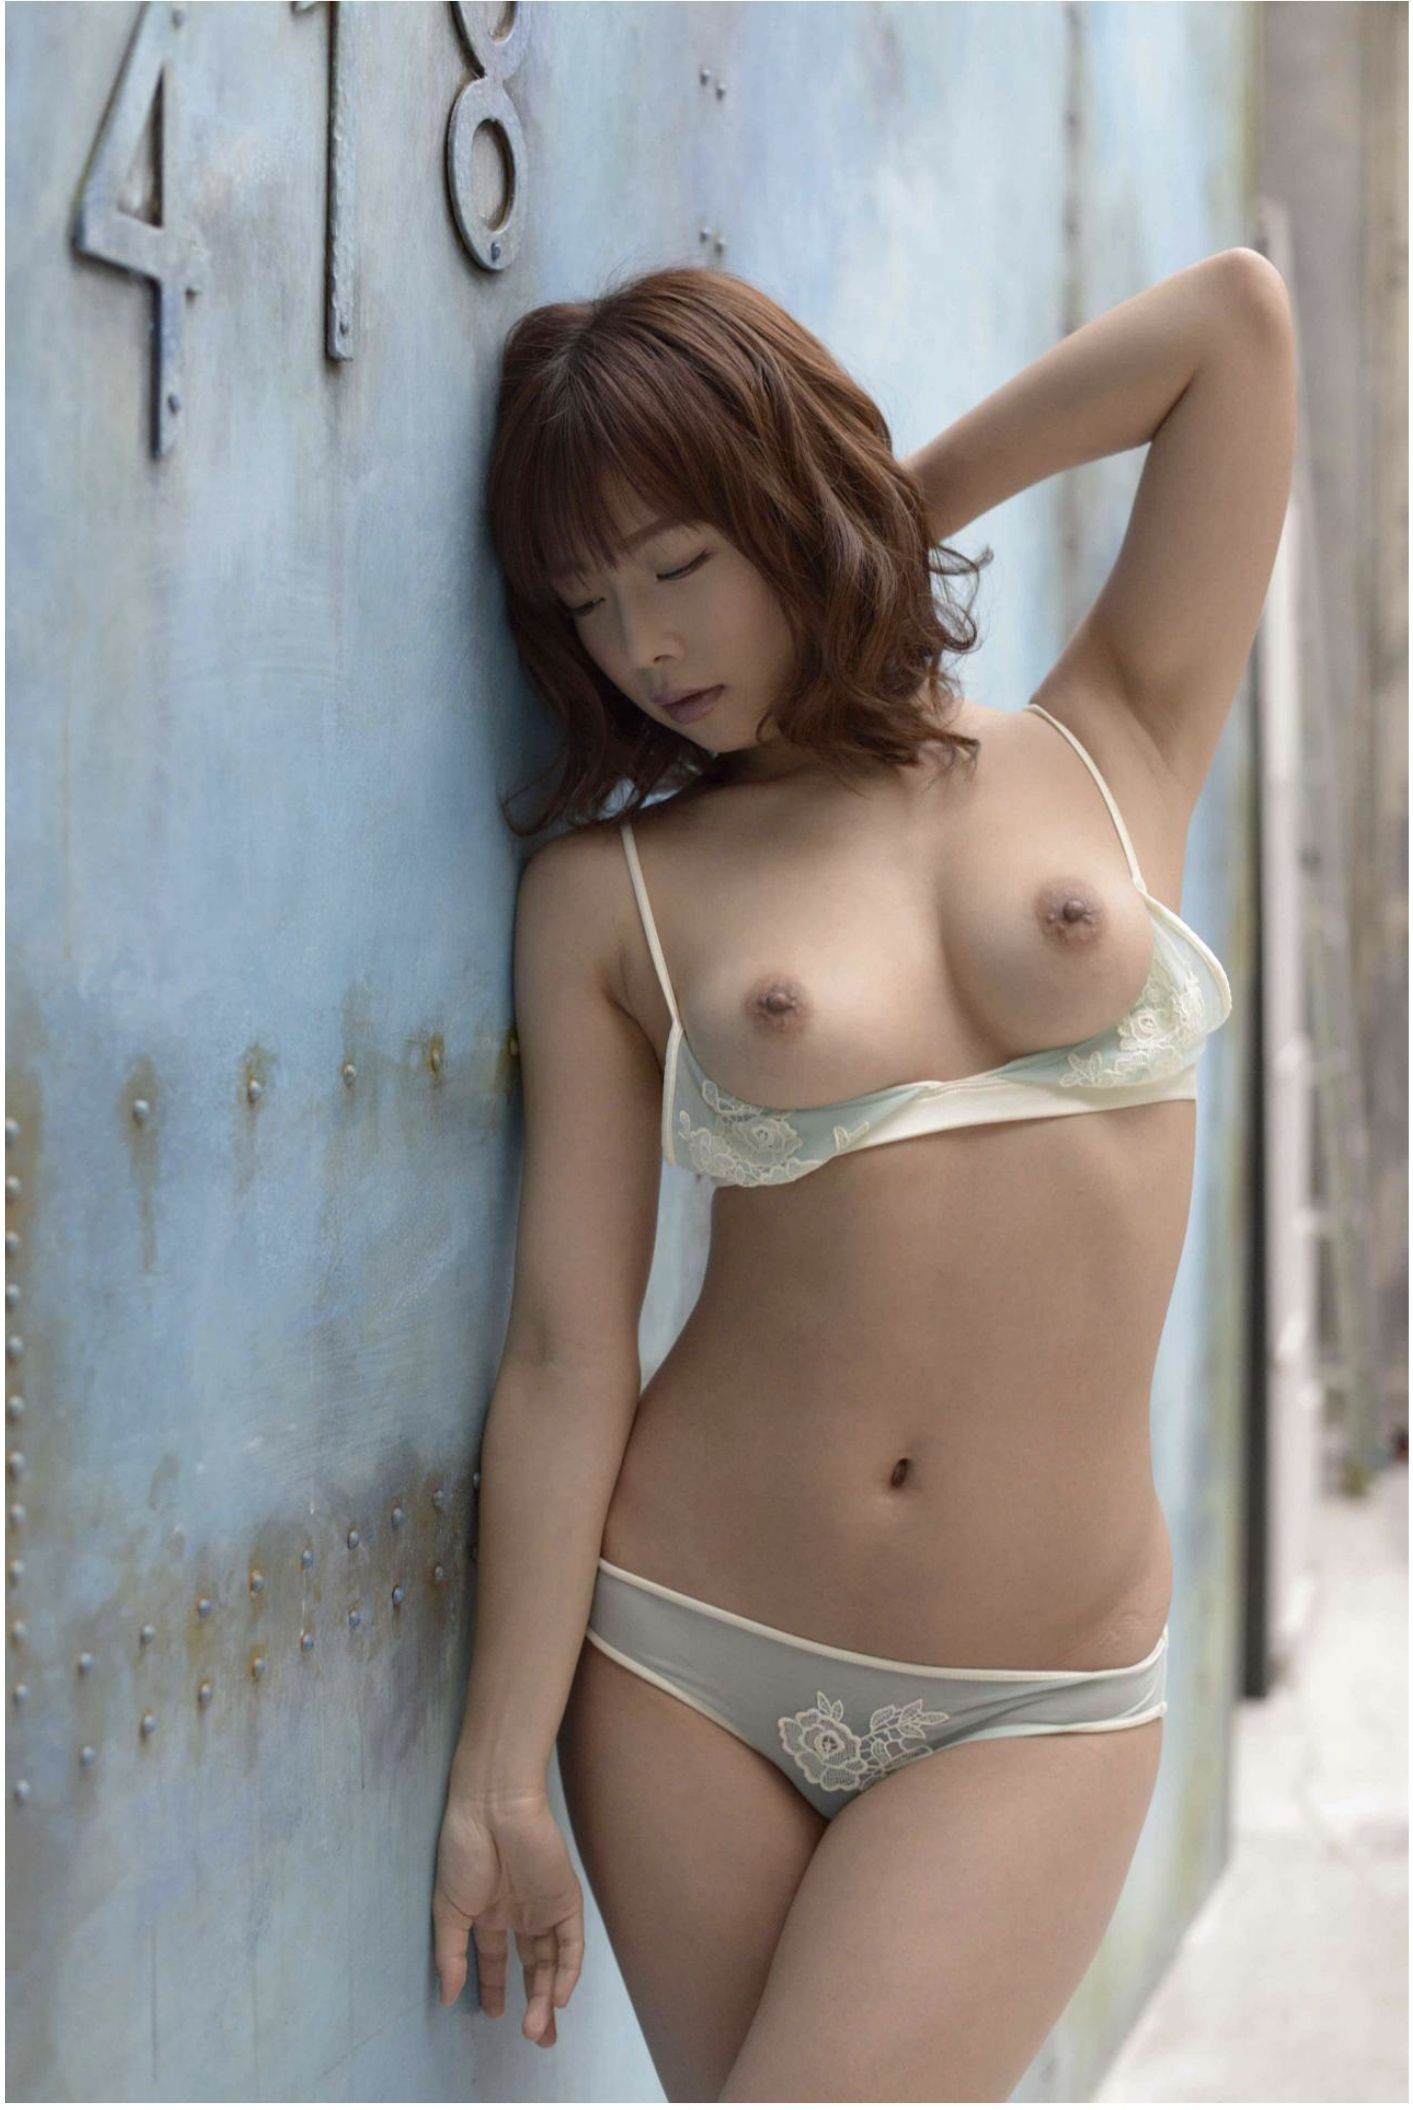 SOFT ON DEMAND GRAVURE COLLECTION 紗倉まな04 photo 075